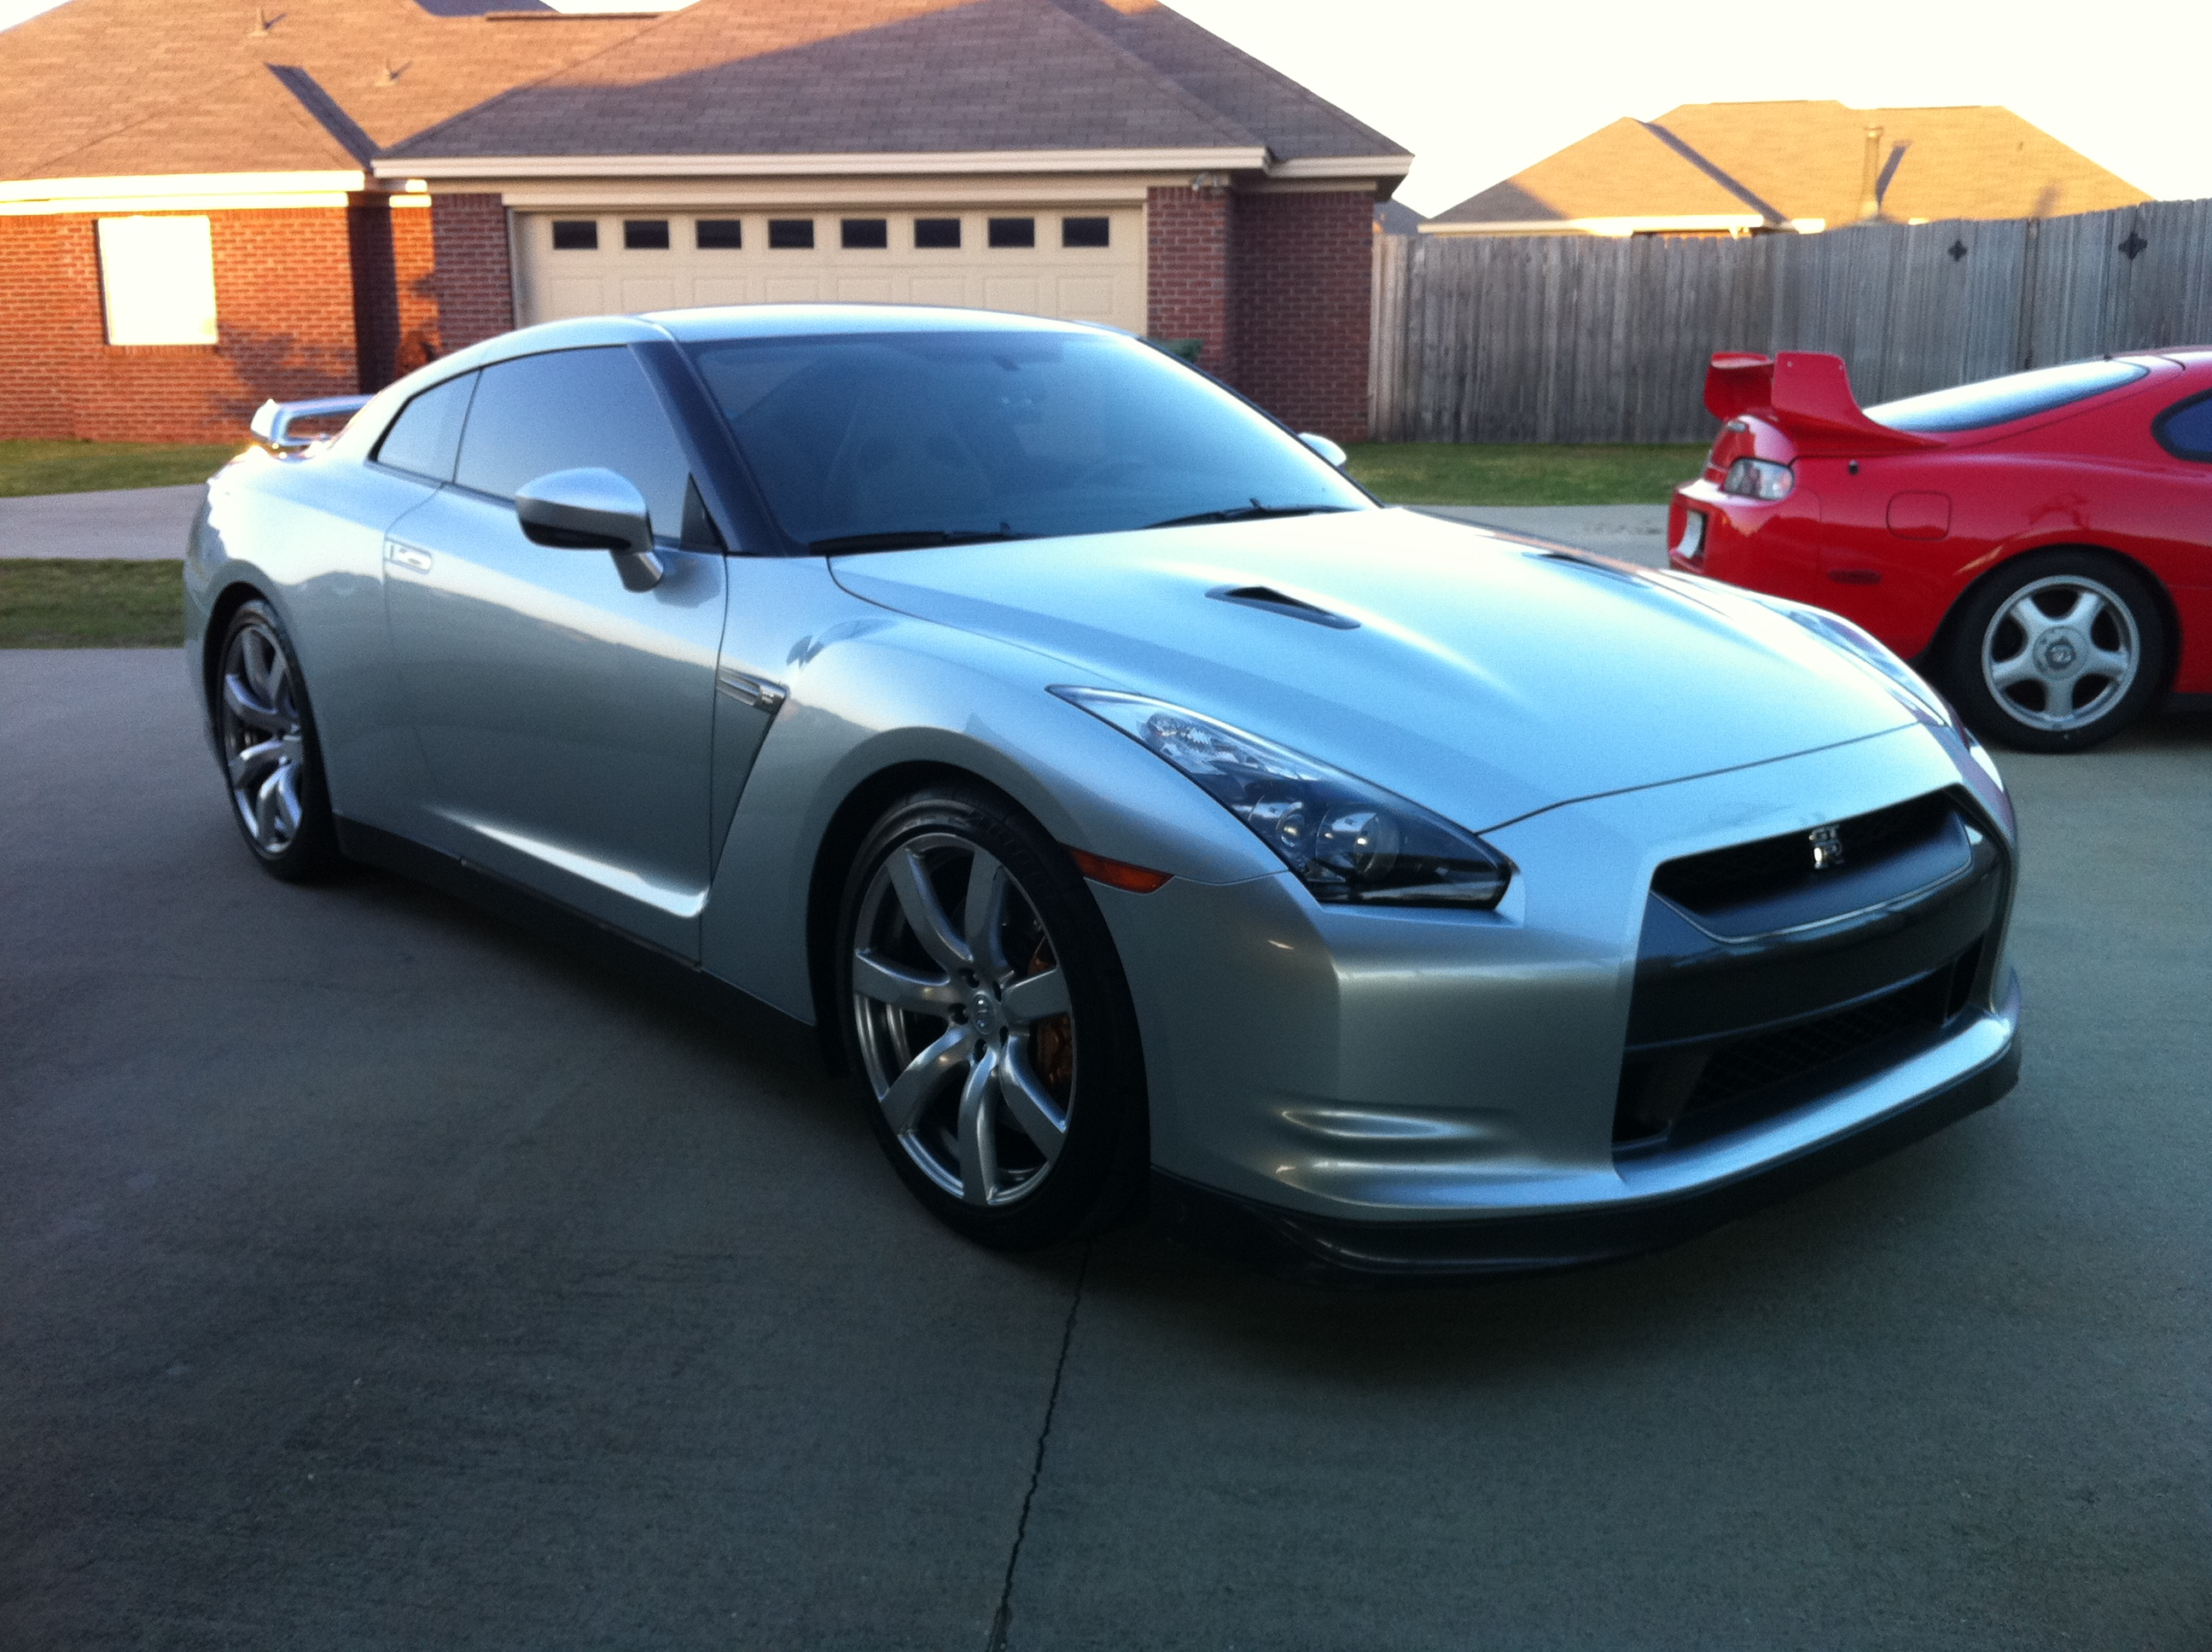 2009 nissan gt r 1 4 mile drag racing timeslip specs 0 60. Black Bedroom Furniture Sets. Home Design Ideas